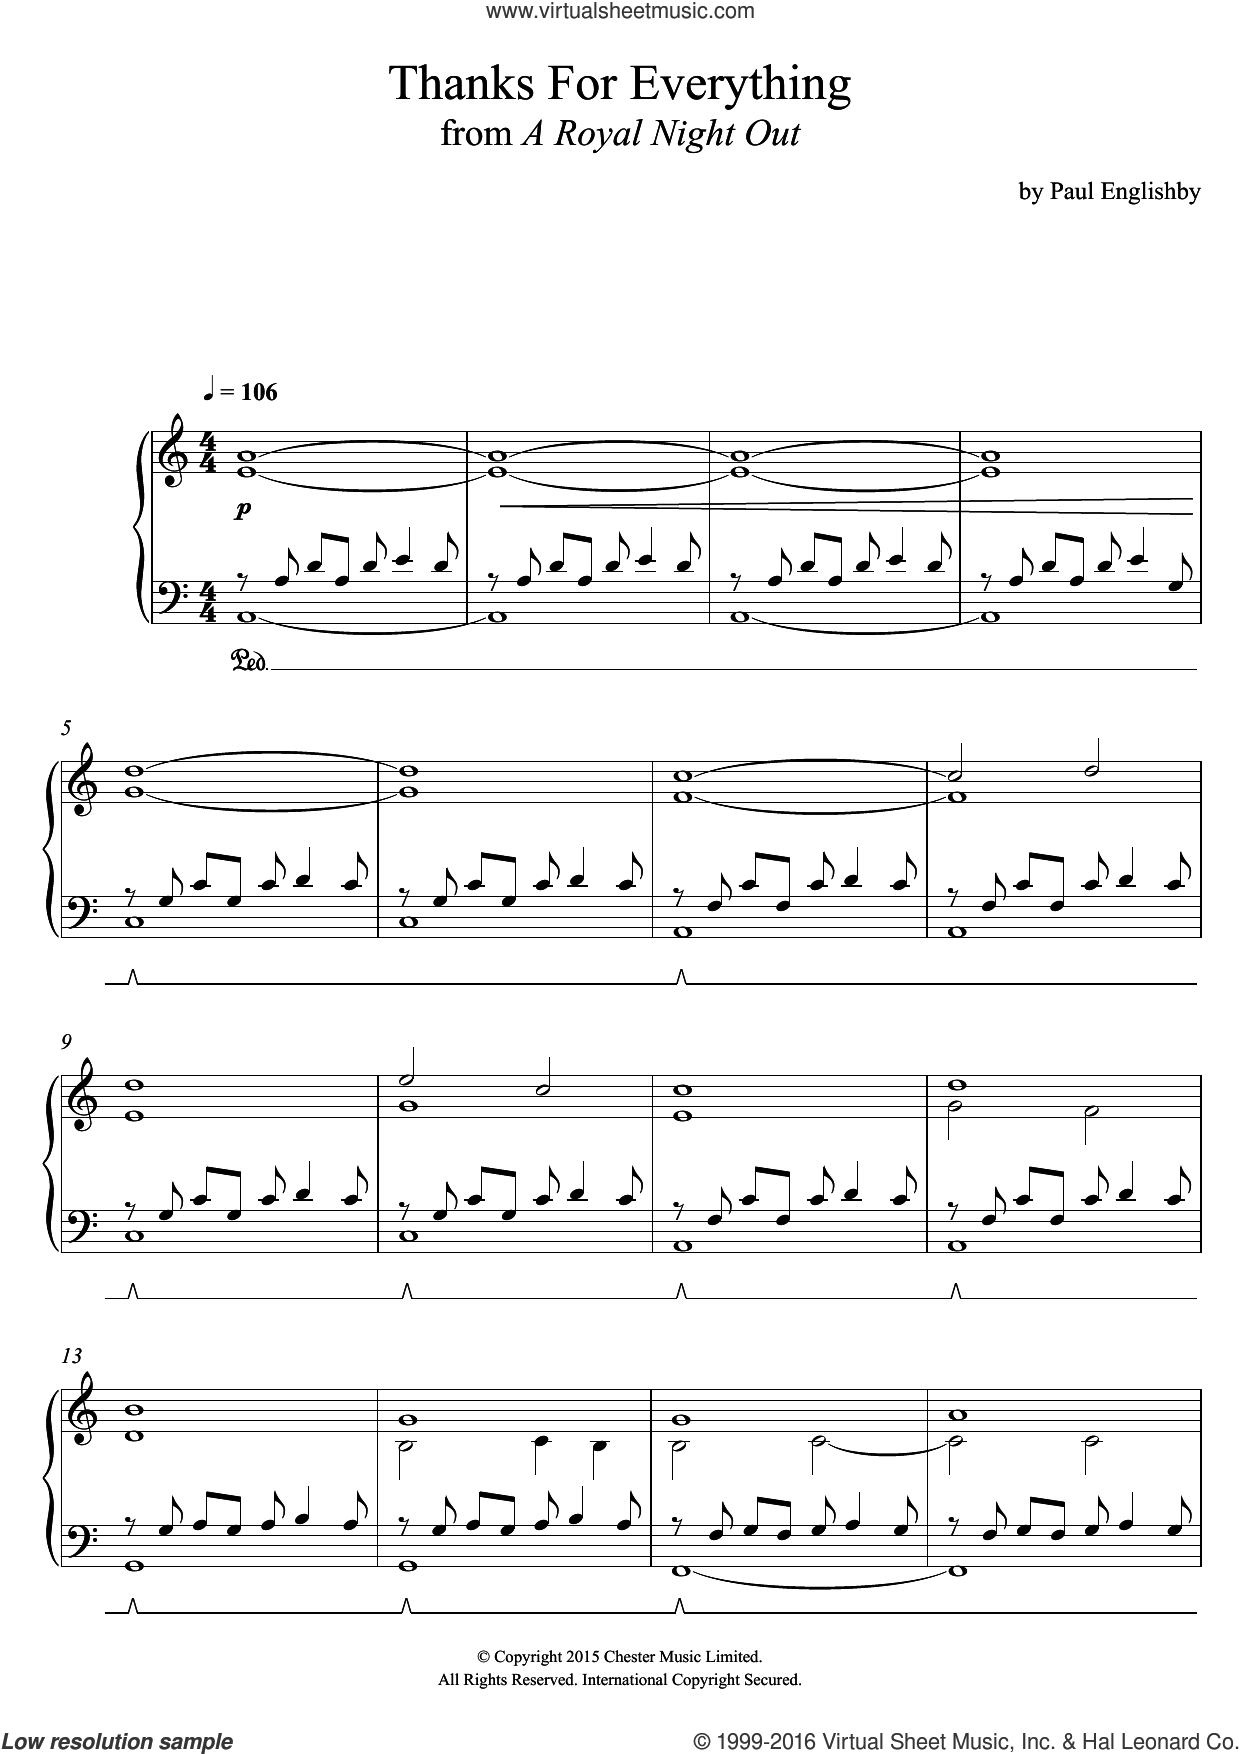 Thanks For Everything (From 'A Royal Night Out') sheet music for piano solo by Paul Englishby, intermediate skill level